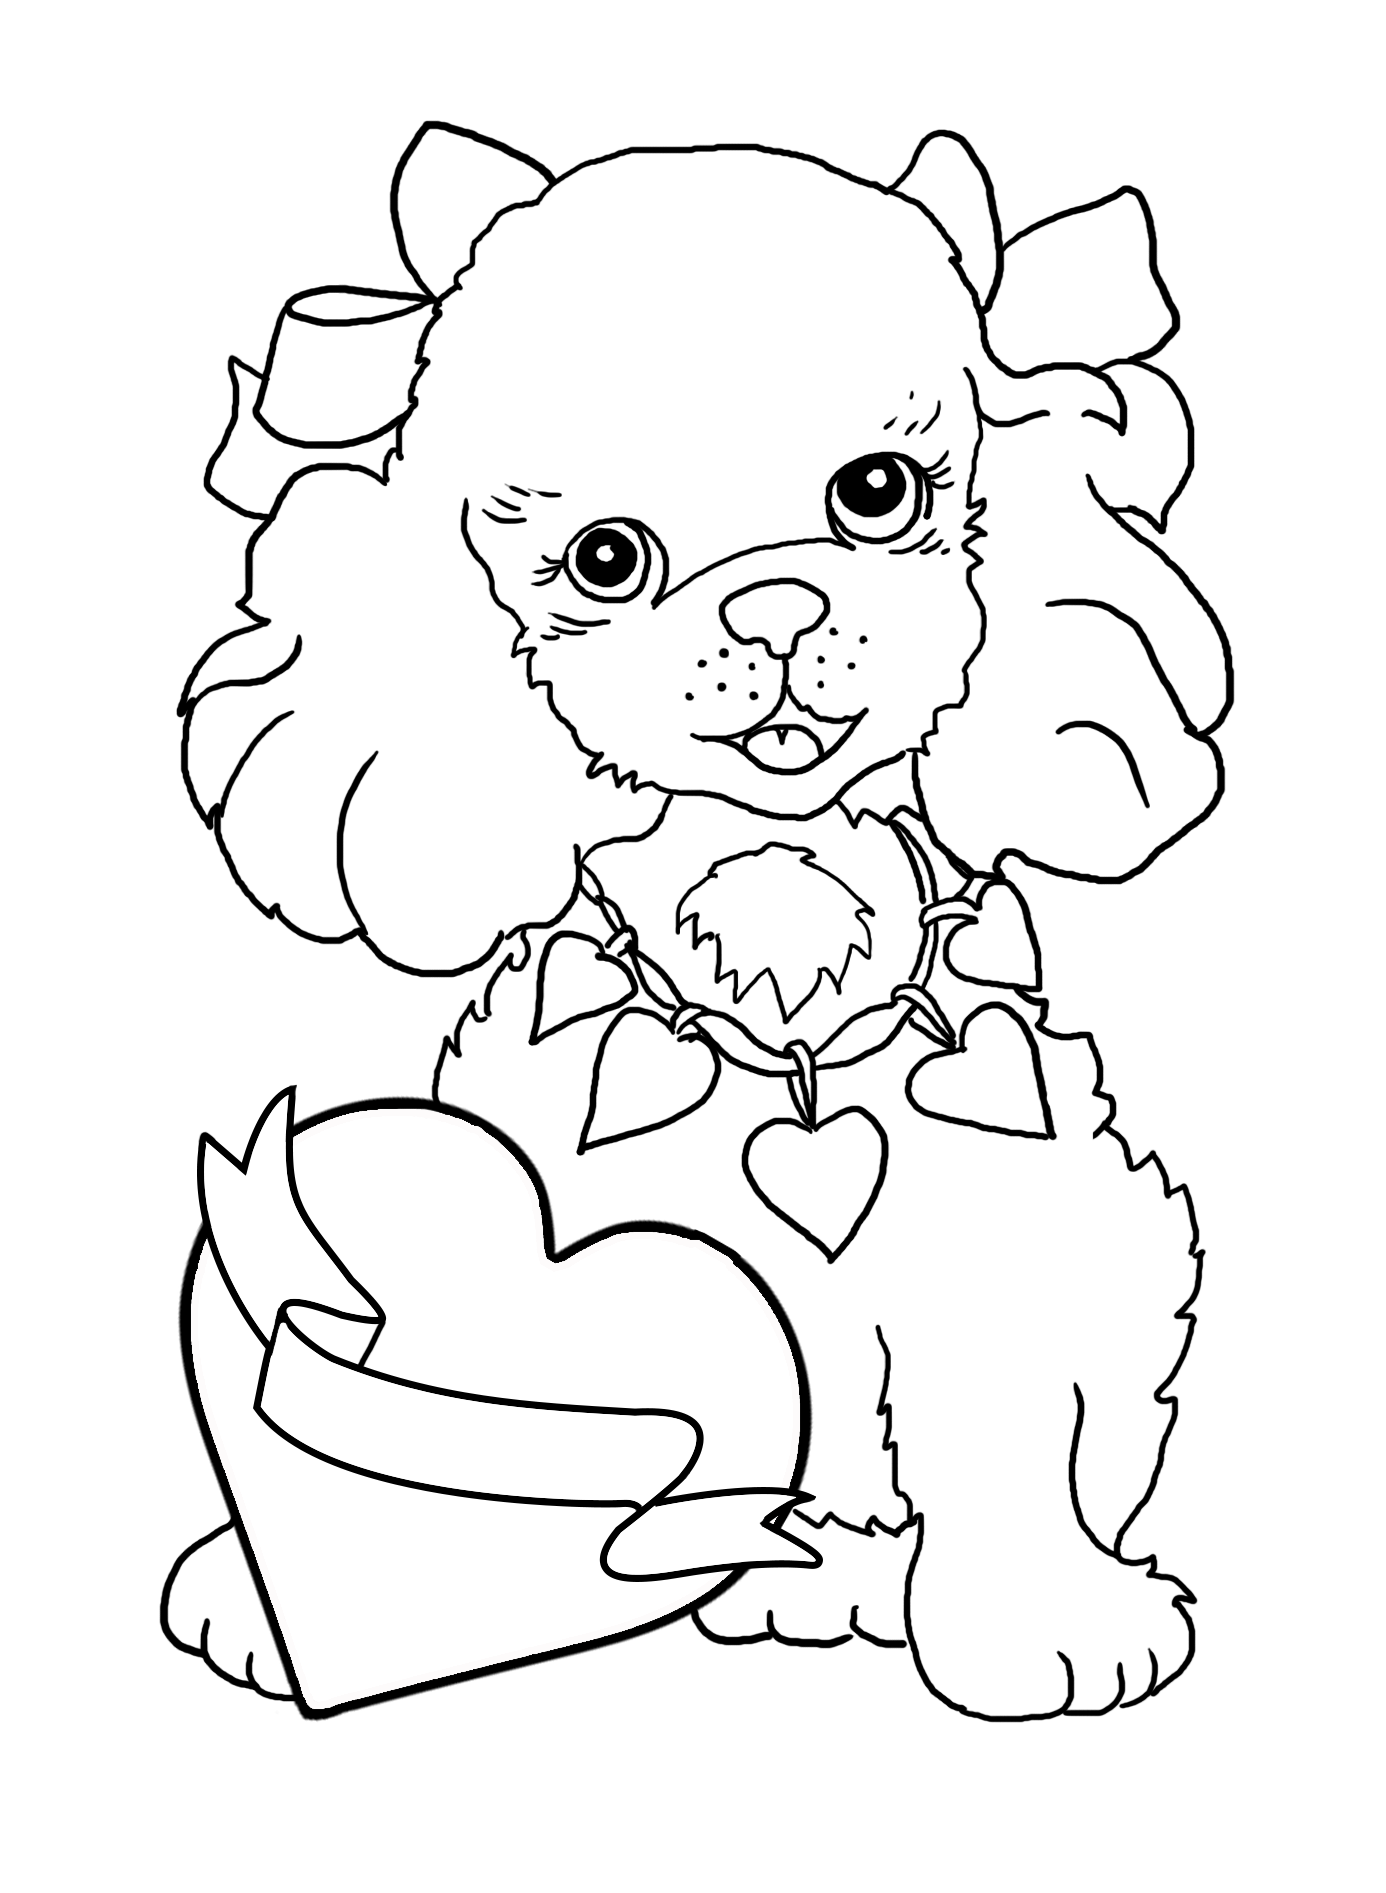 dog coloring page for Valentine's Day